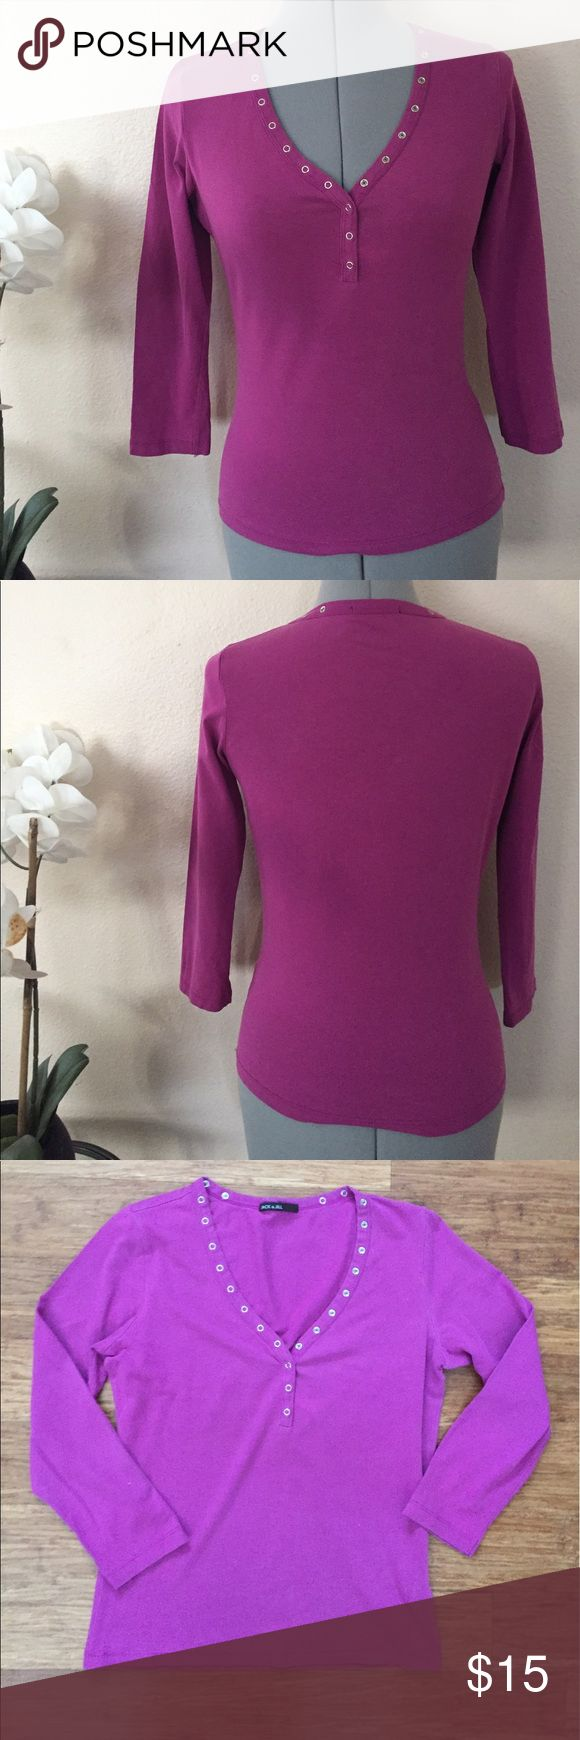 Jack & Jill blouse Doesn't say size, wears small. Excellent condition. No stains, holes or flaws. Ships within 24 hours of purchase. Expect the receive item with 2-4 days. Use bundle button to get 20% off bundles of 3 or more from my closet! jack & Jill Tops Blouses